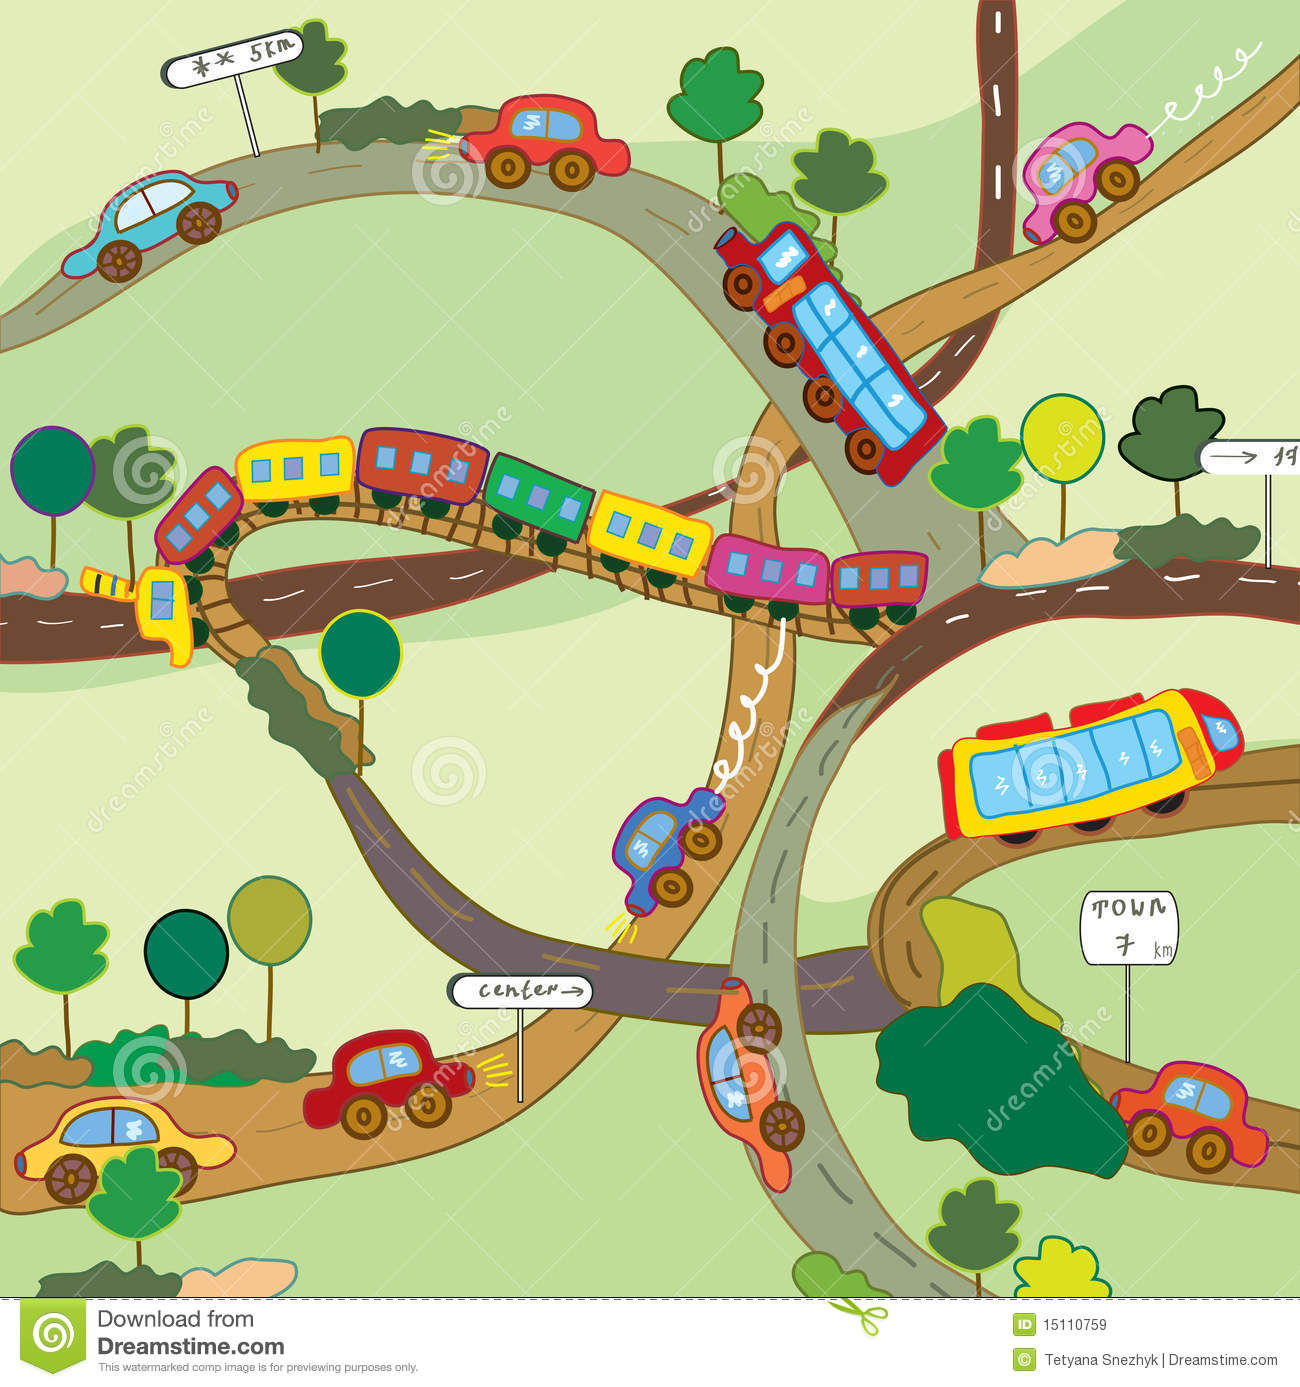 Worksheet About Transportation Also Characteristics Of Living Things ...